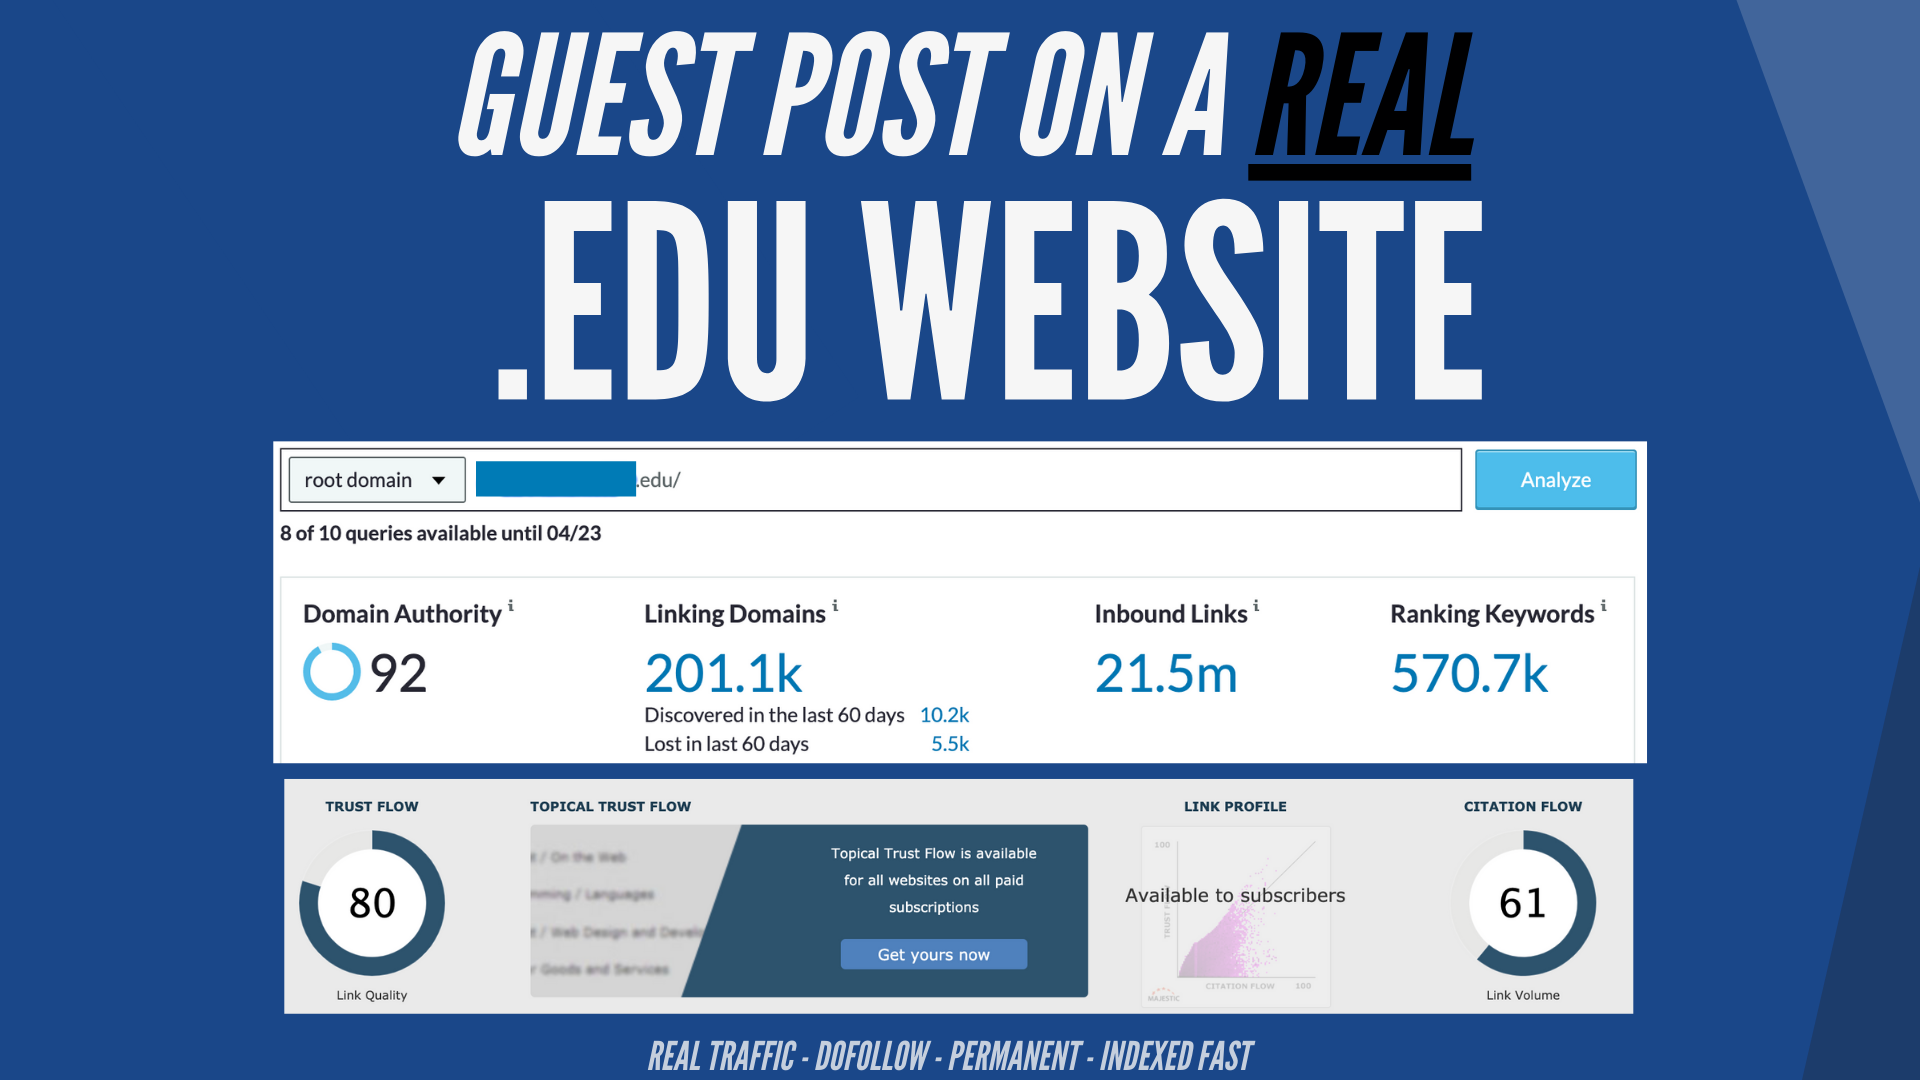 20 EDU Guest Post Sites Available